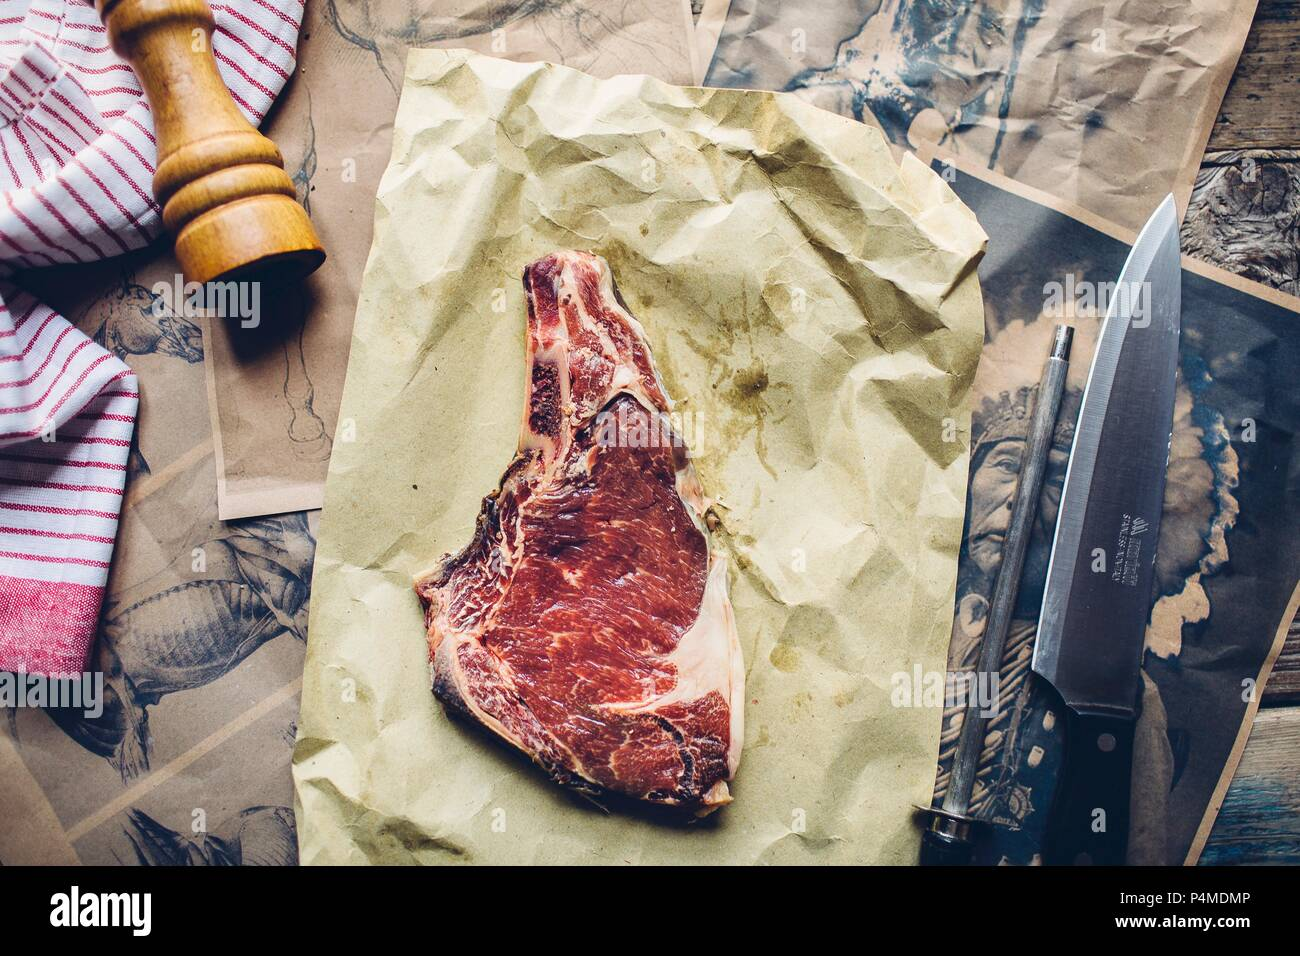 A raw horse steak on baking paper - Stock Image